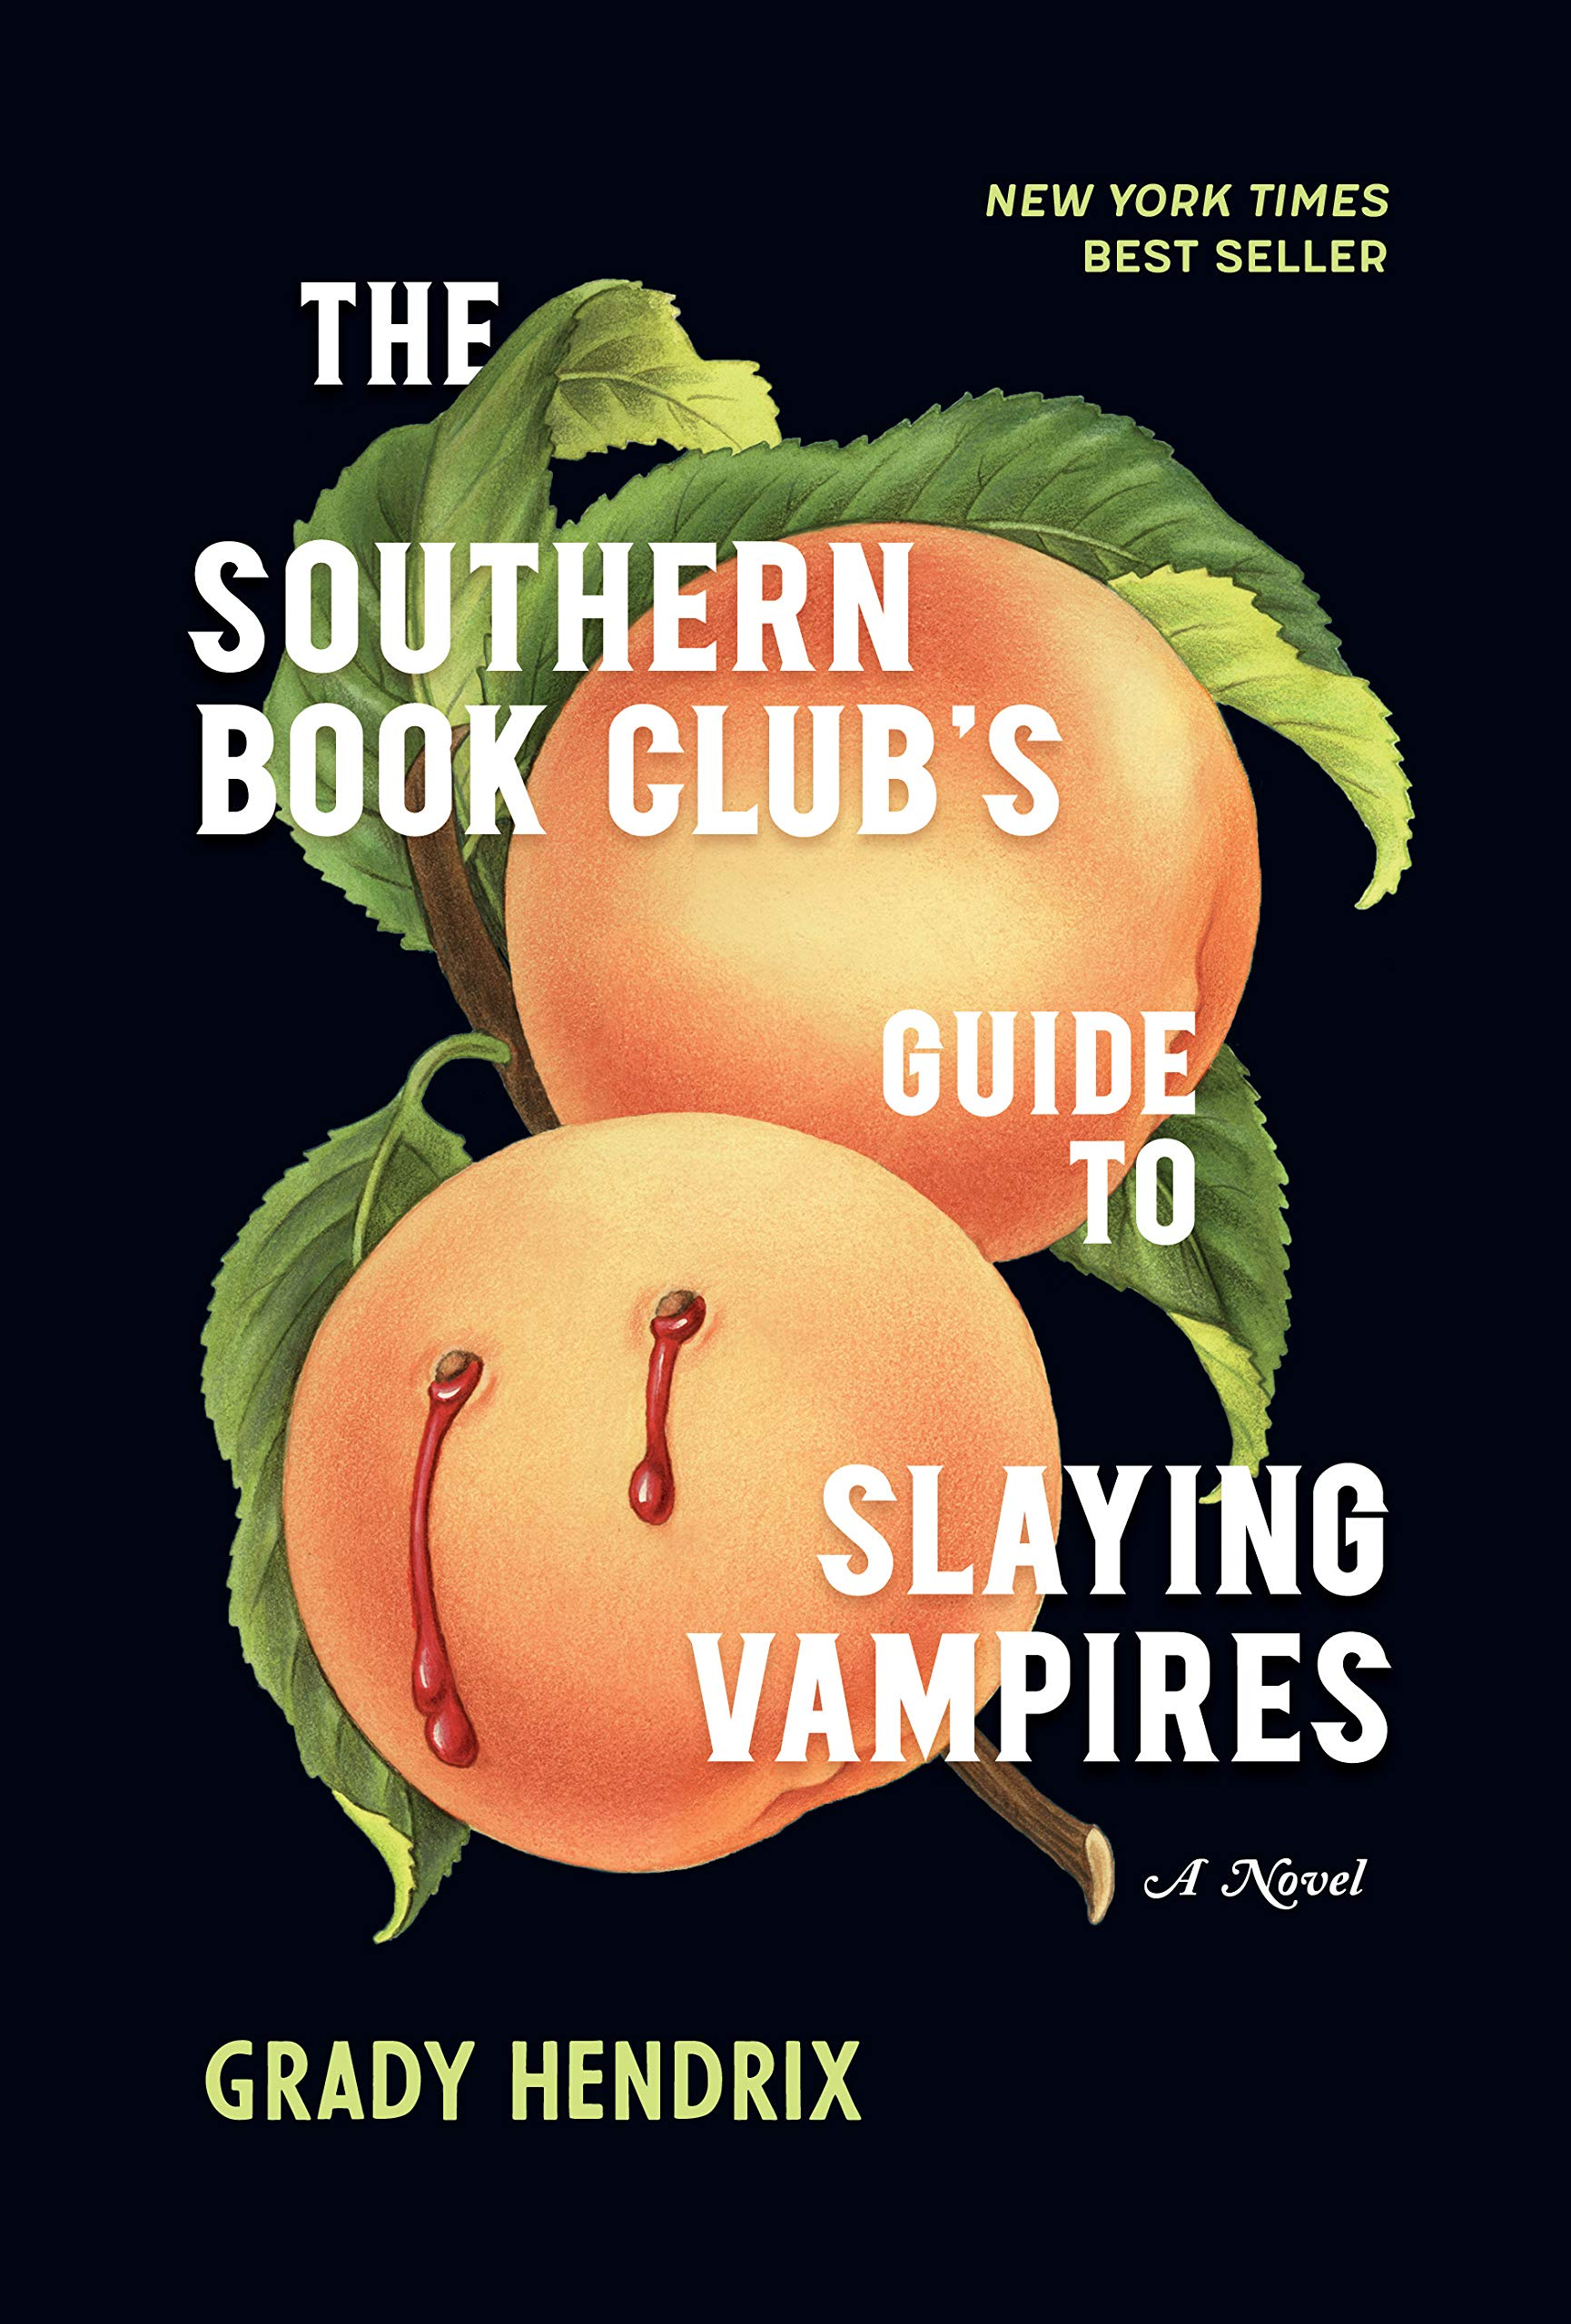 Amazon.com: The Southern Book Club's Guide to Slaying Vampires ...